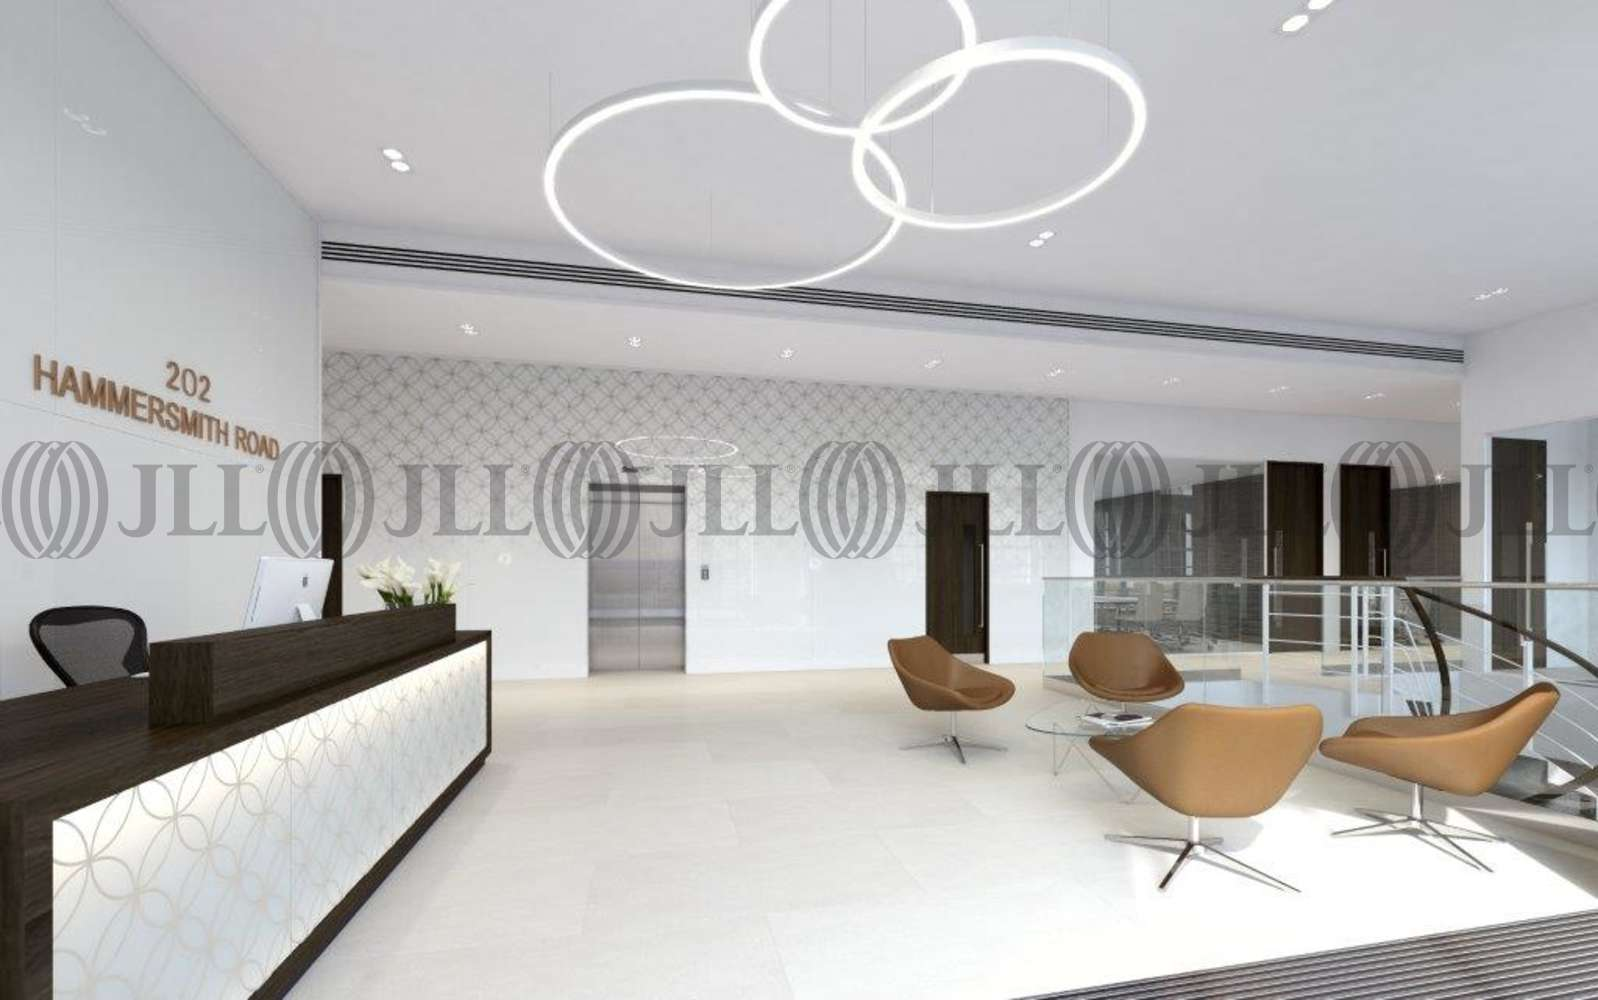 Offices London, W6 7DN - 202 Hammersmith road  - 003002